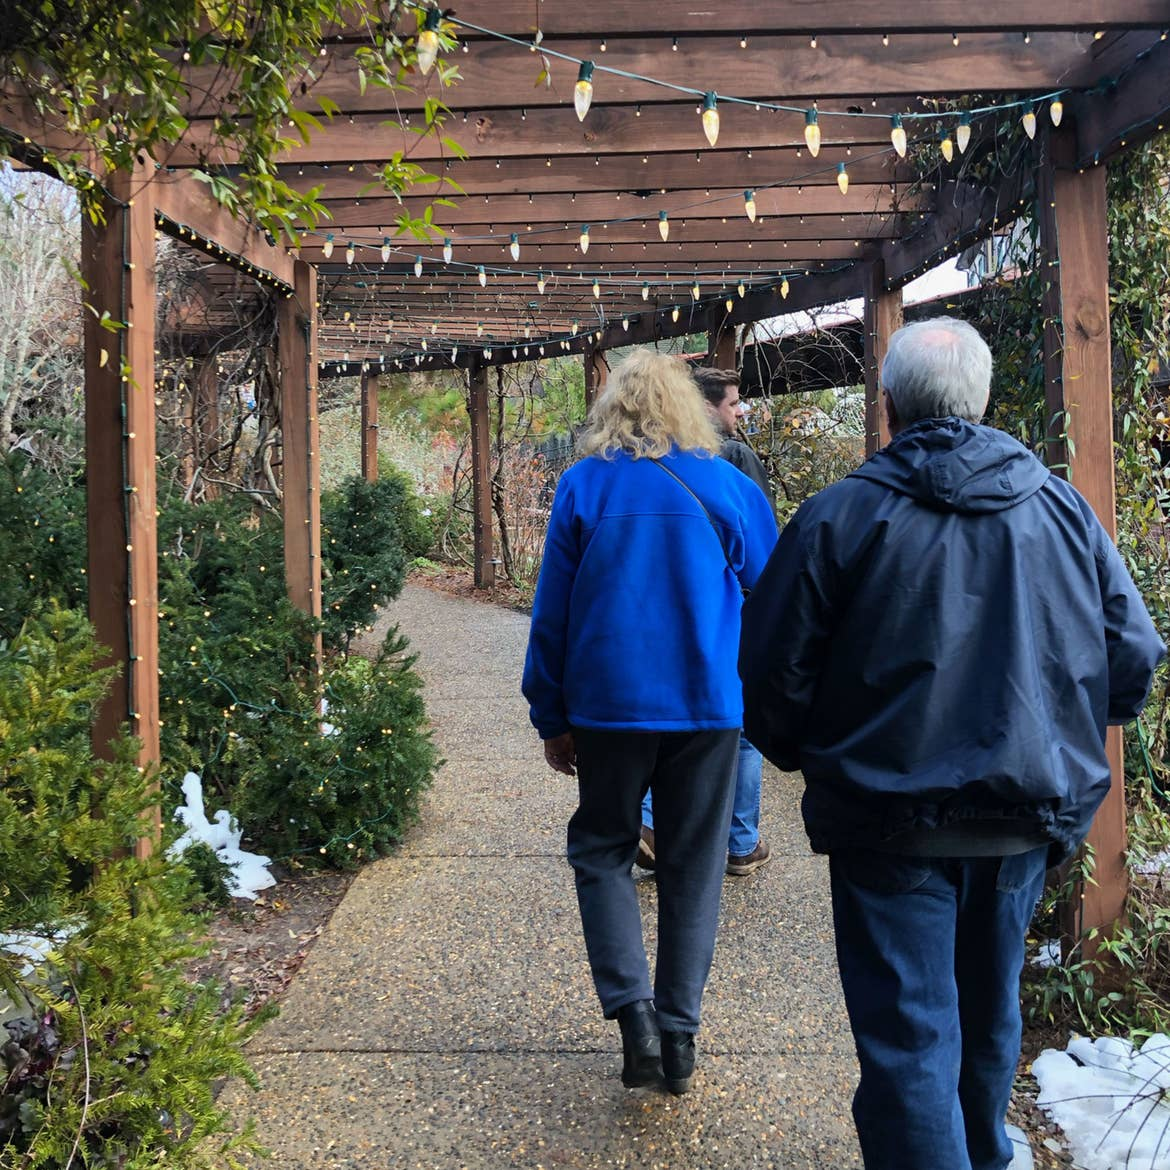 Author, Jenn C. Harmon's mother (left) and father (right) walk under the trellis of the gardens at the Biltmore Estate property.v